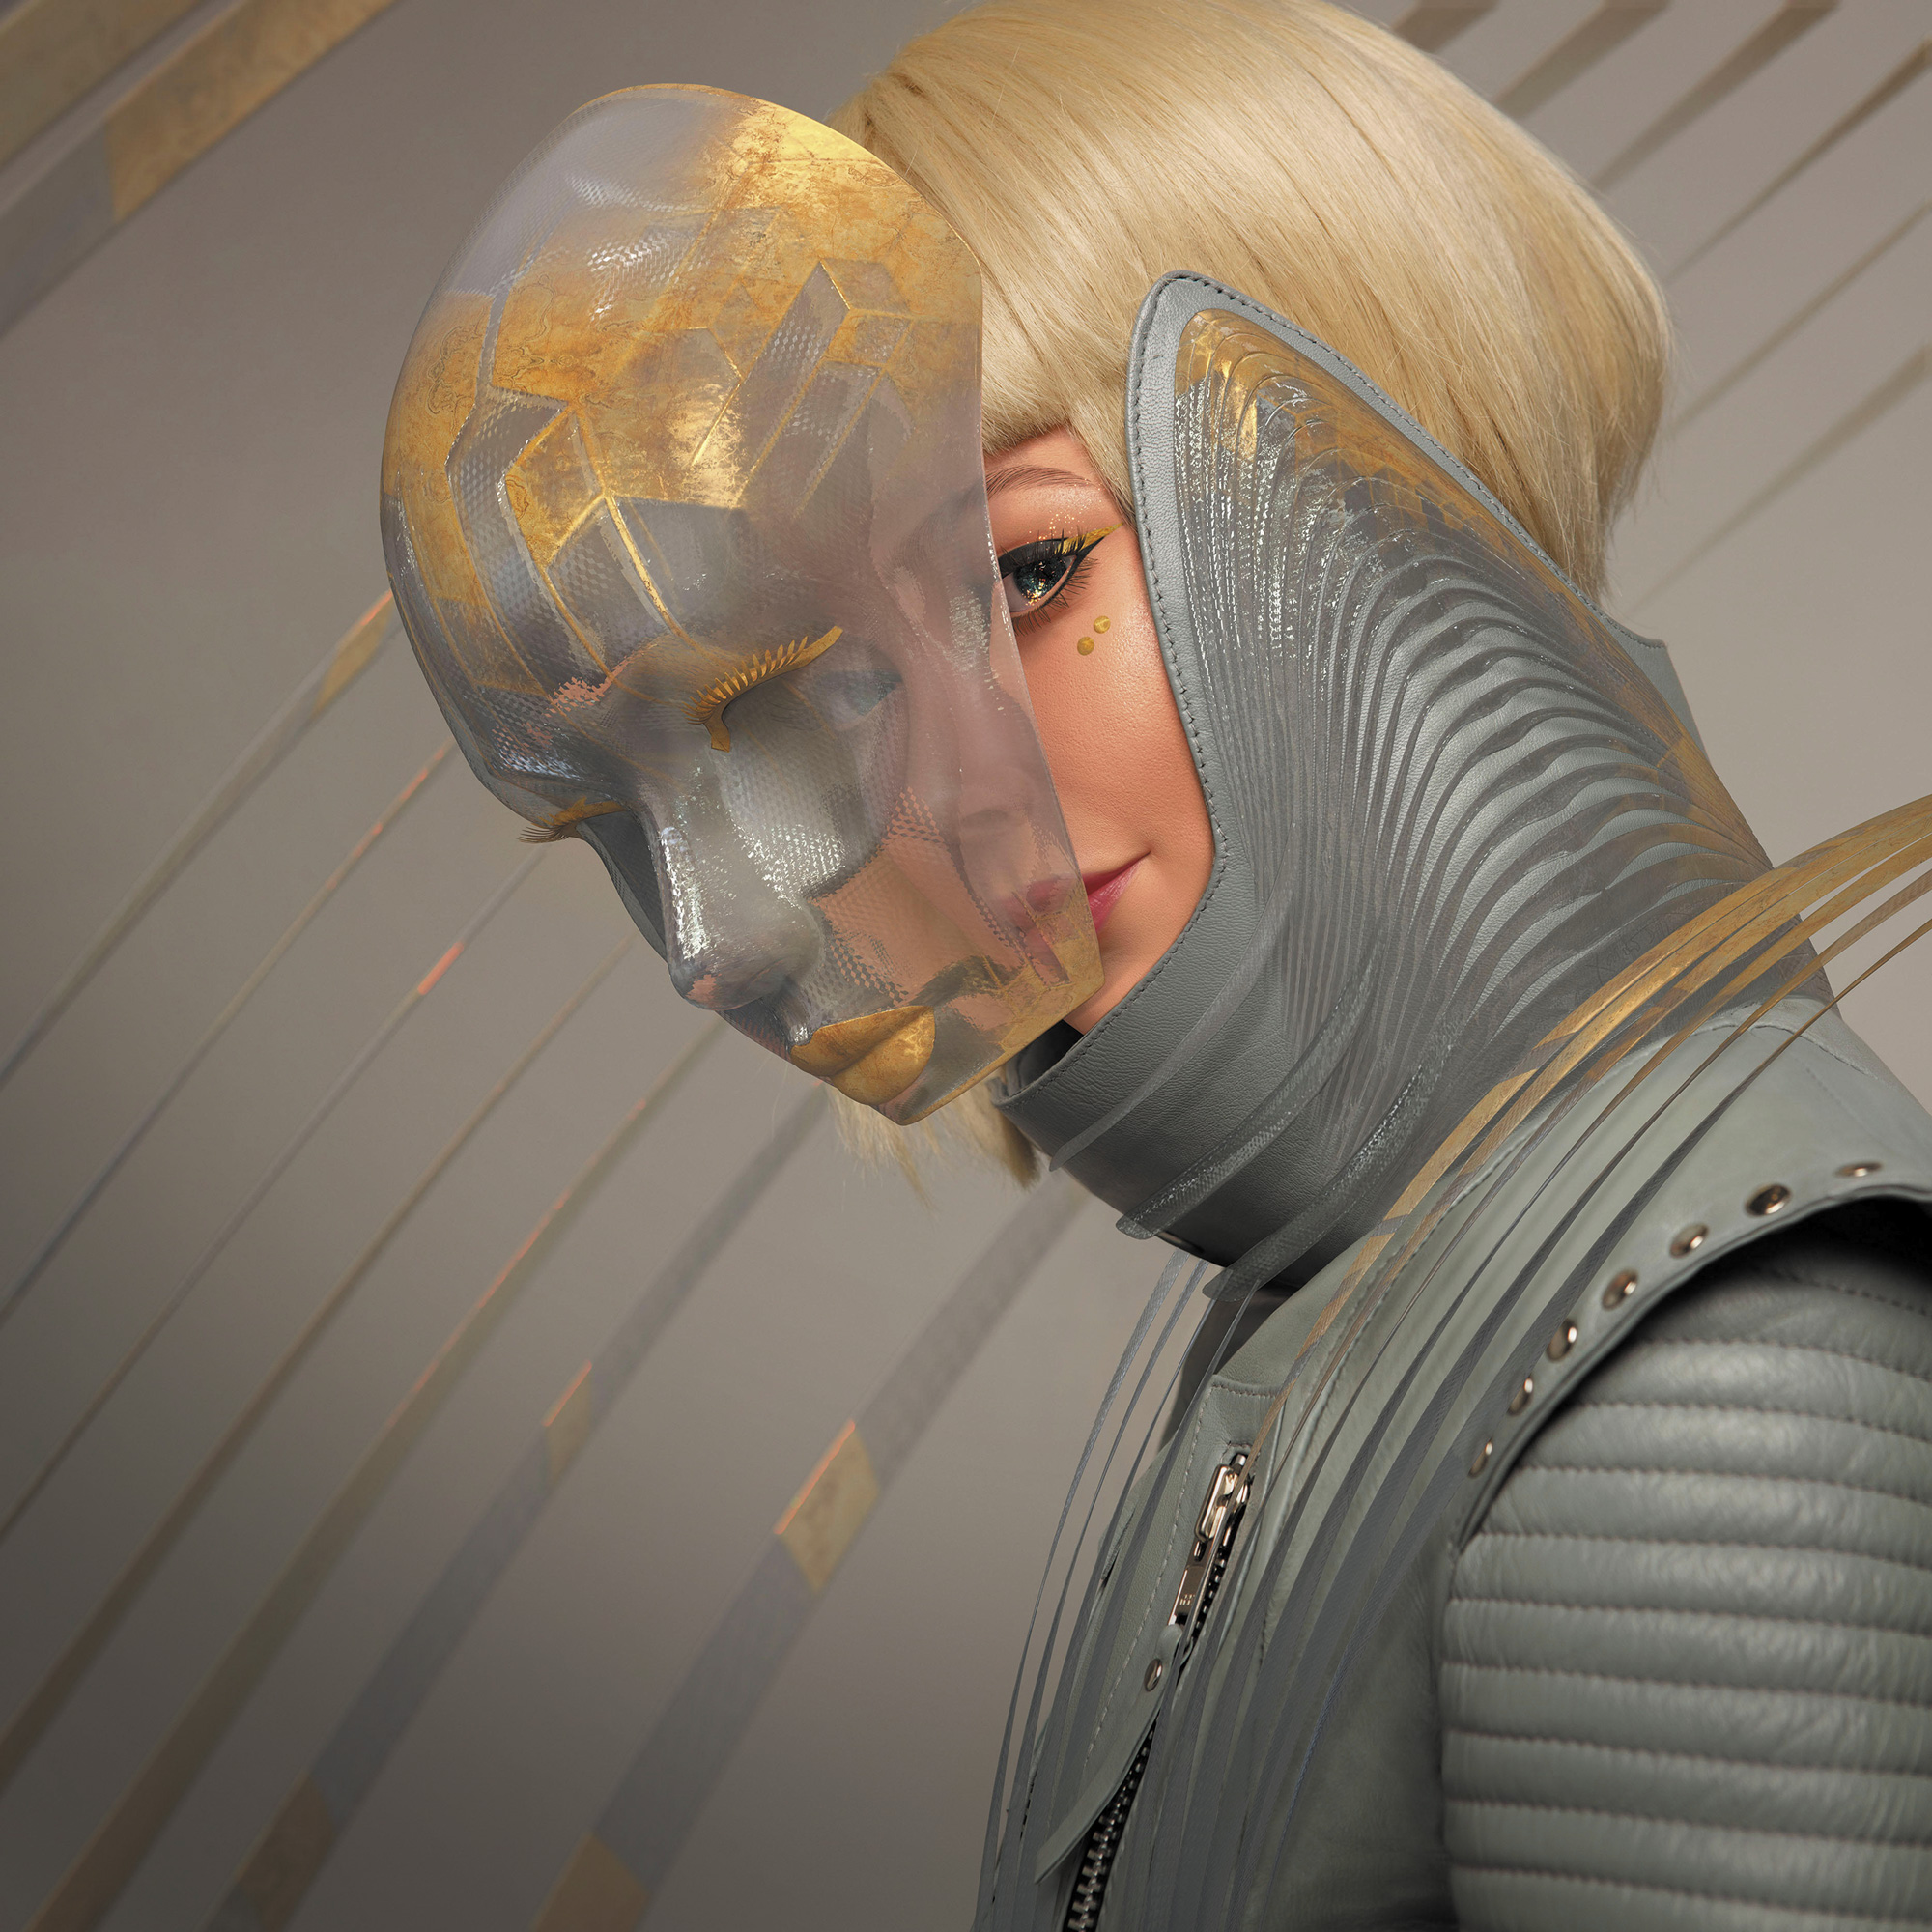 Binxie_character-created-for-Aliza-Technology-to-assist-us-in-our-AI-facial-animation_Artopsy_XanderSmith_Birdy092_KrystiJomei